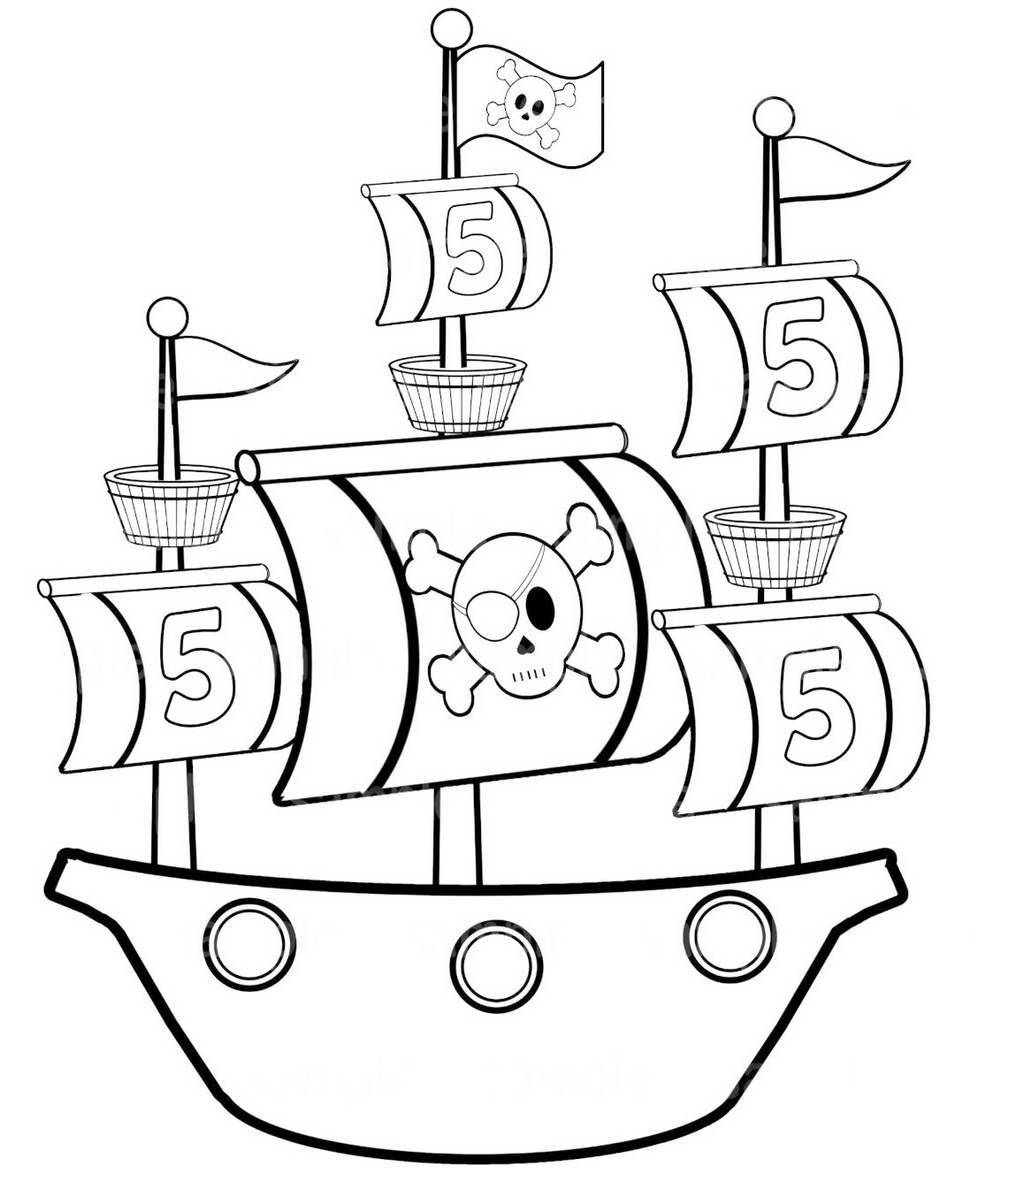 simple pirate ship coloring pages for preschool